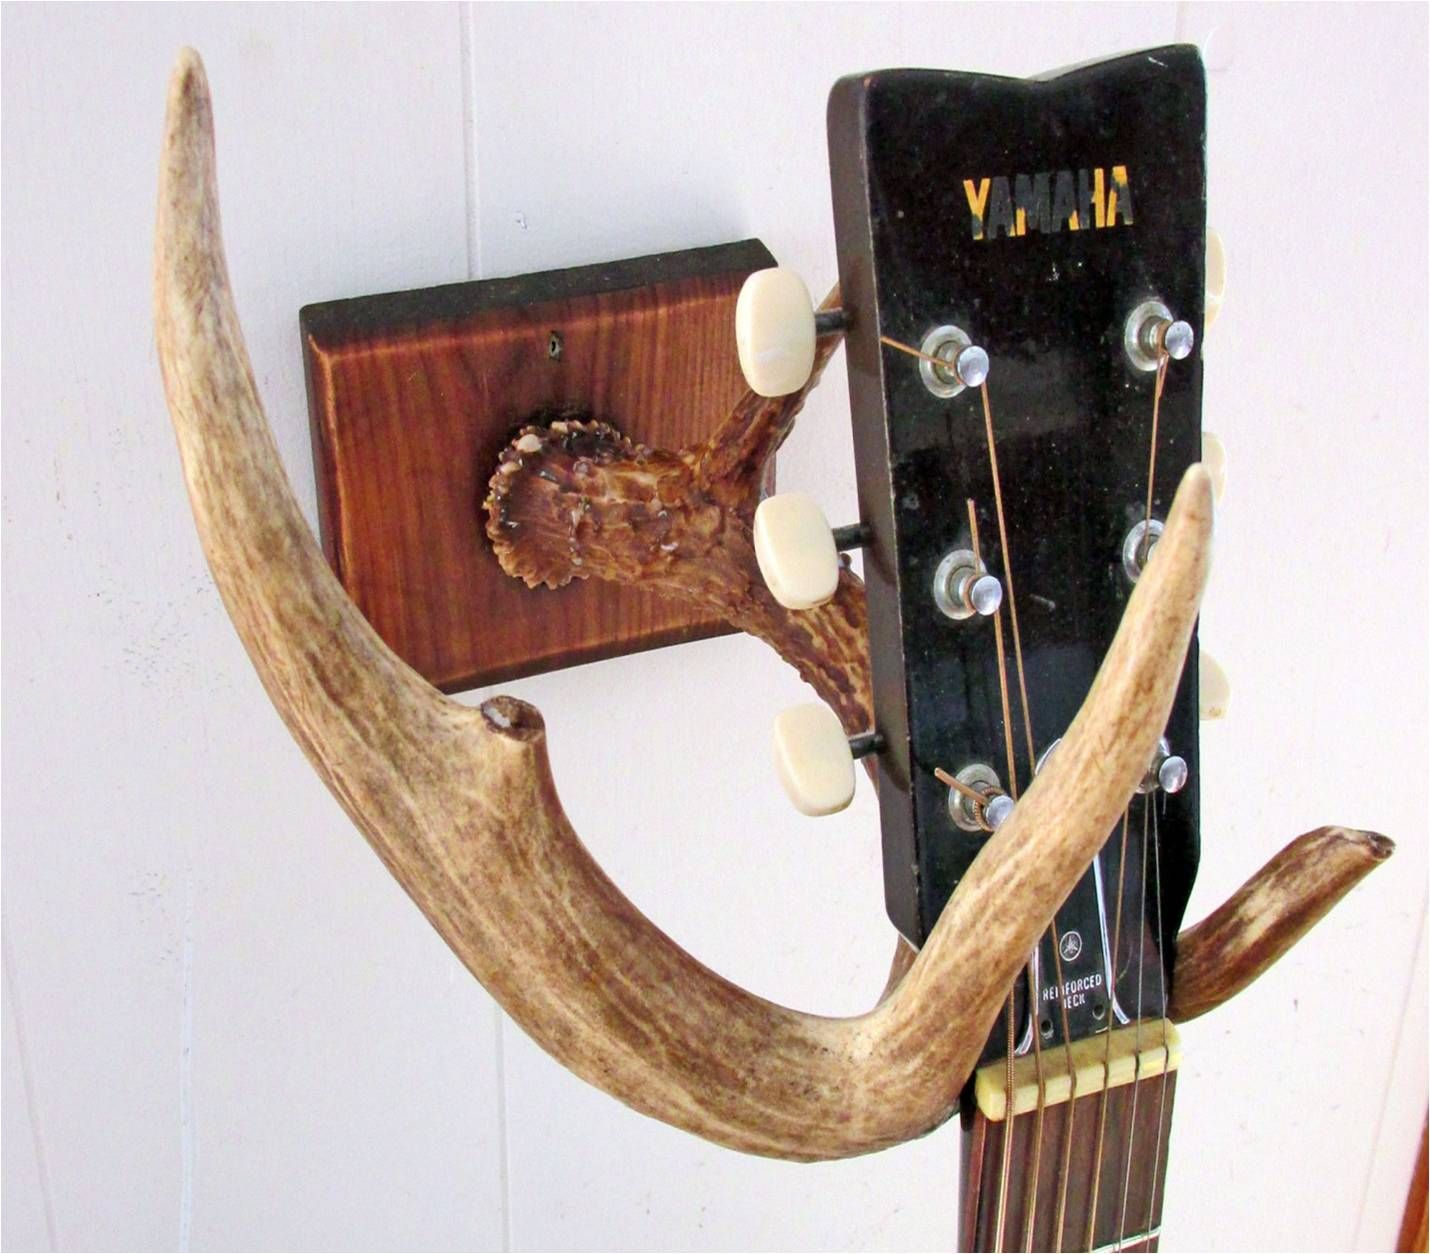 diy guitar wall mount made from deer antler